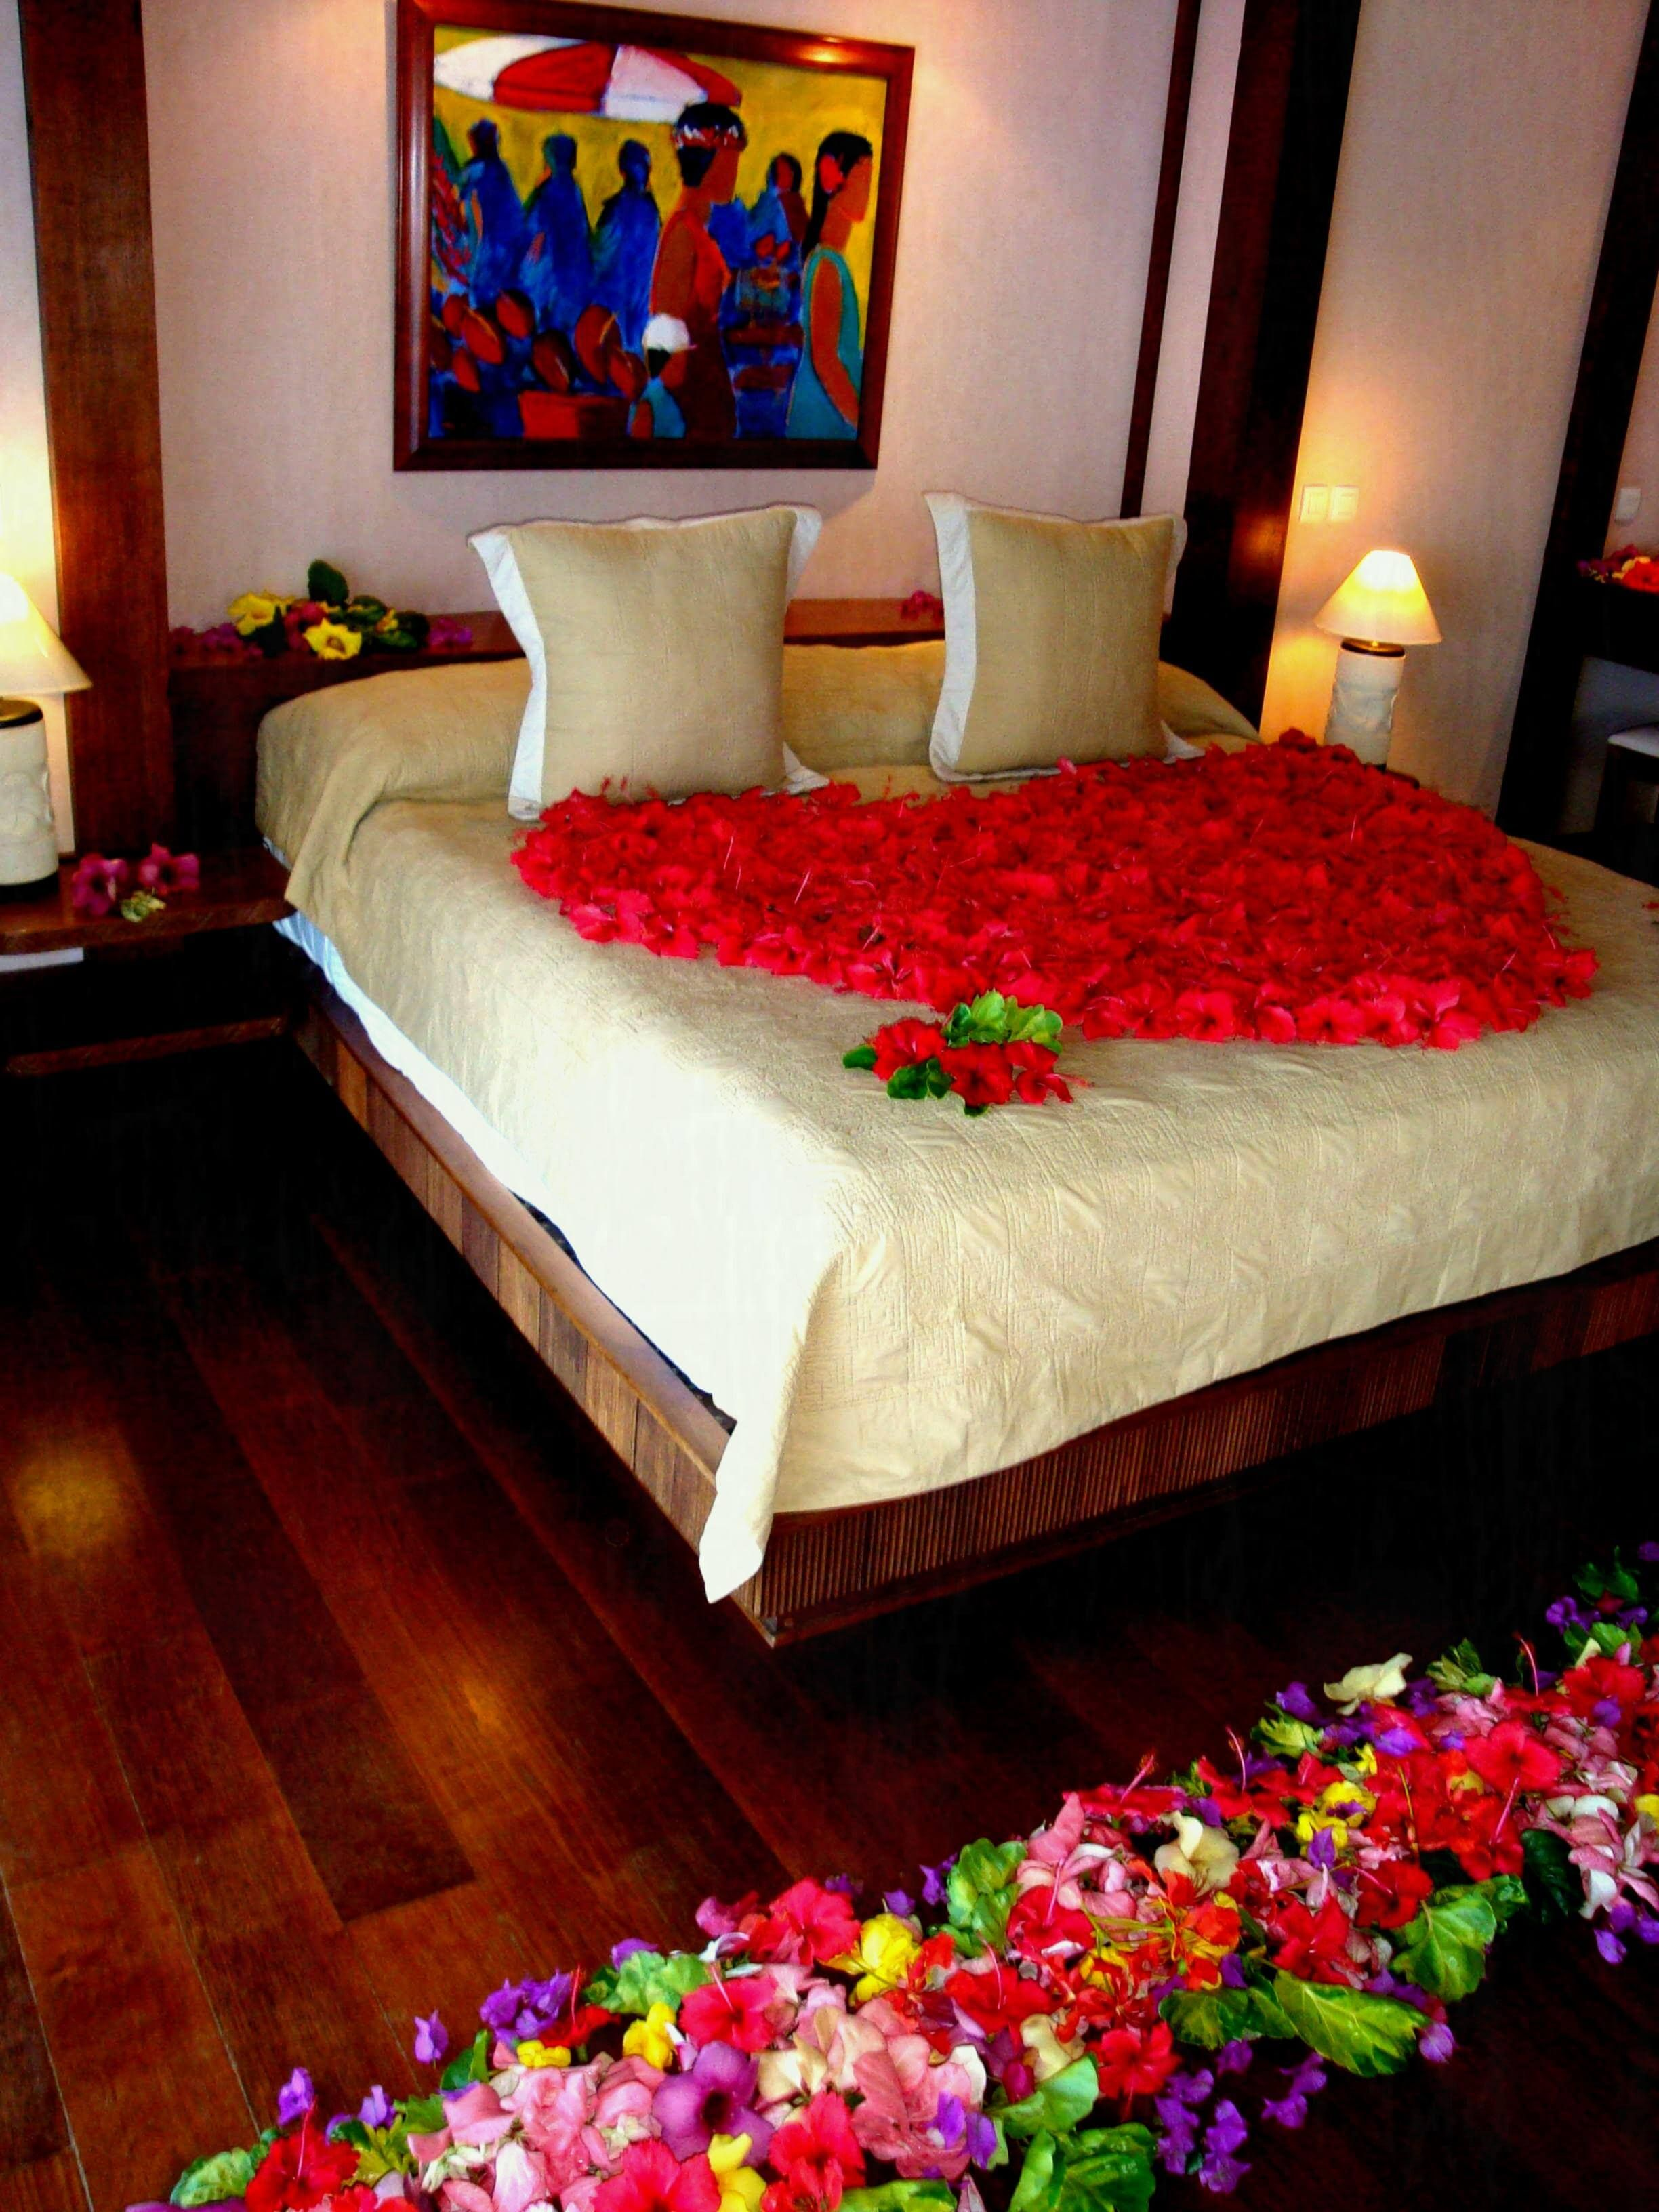 20 Valentine Bedroom Decoration Ideas For Spending Quality Time With Your Love Bedroom Decor For Couples Valentines Bedroom Valentine Bedroom Decor